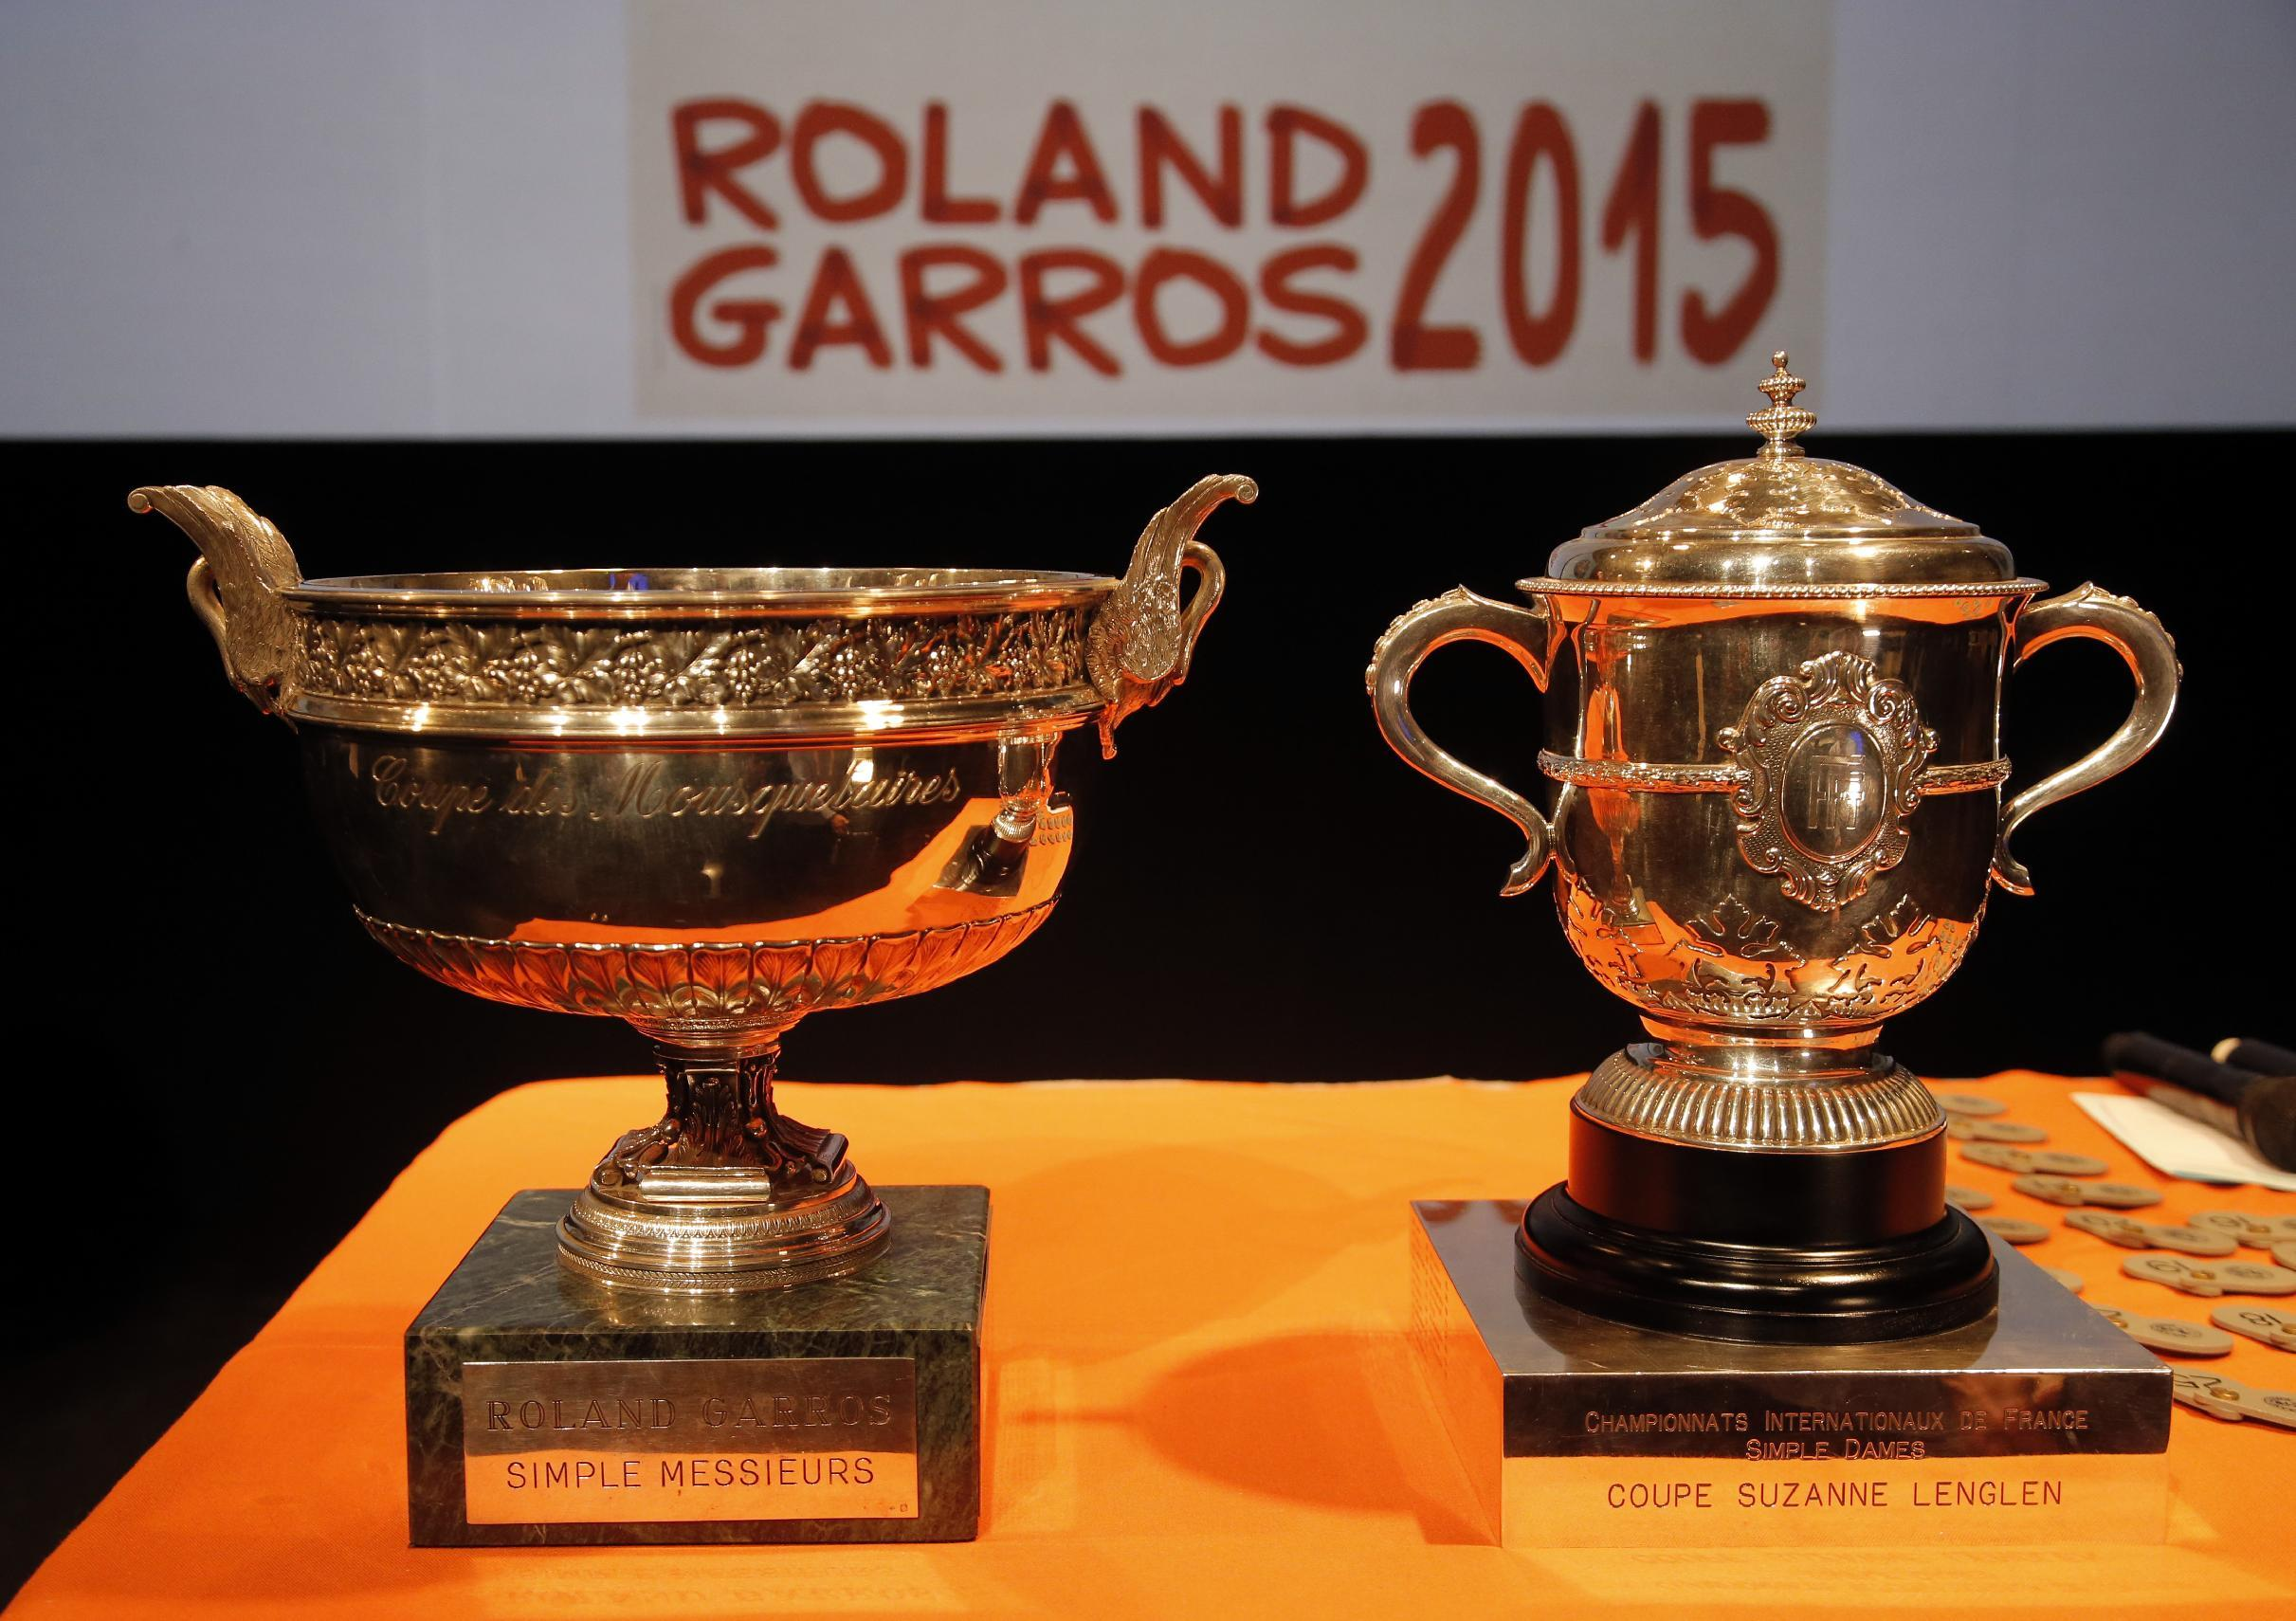 roland garros seedings may ask rafael nadal to beat djokovic and murray and federer rafael. Black Bedroom Furniture Sets. Home Design Ideas